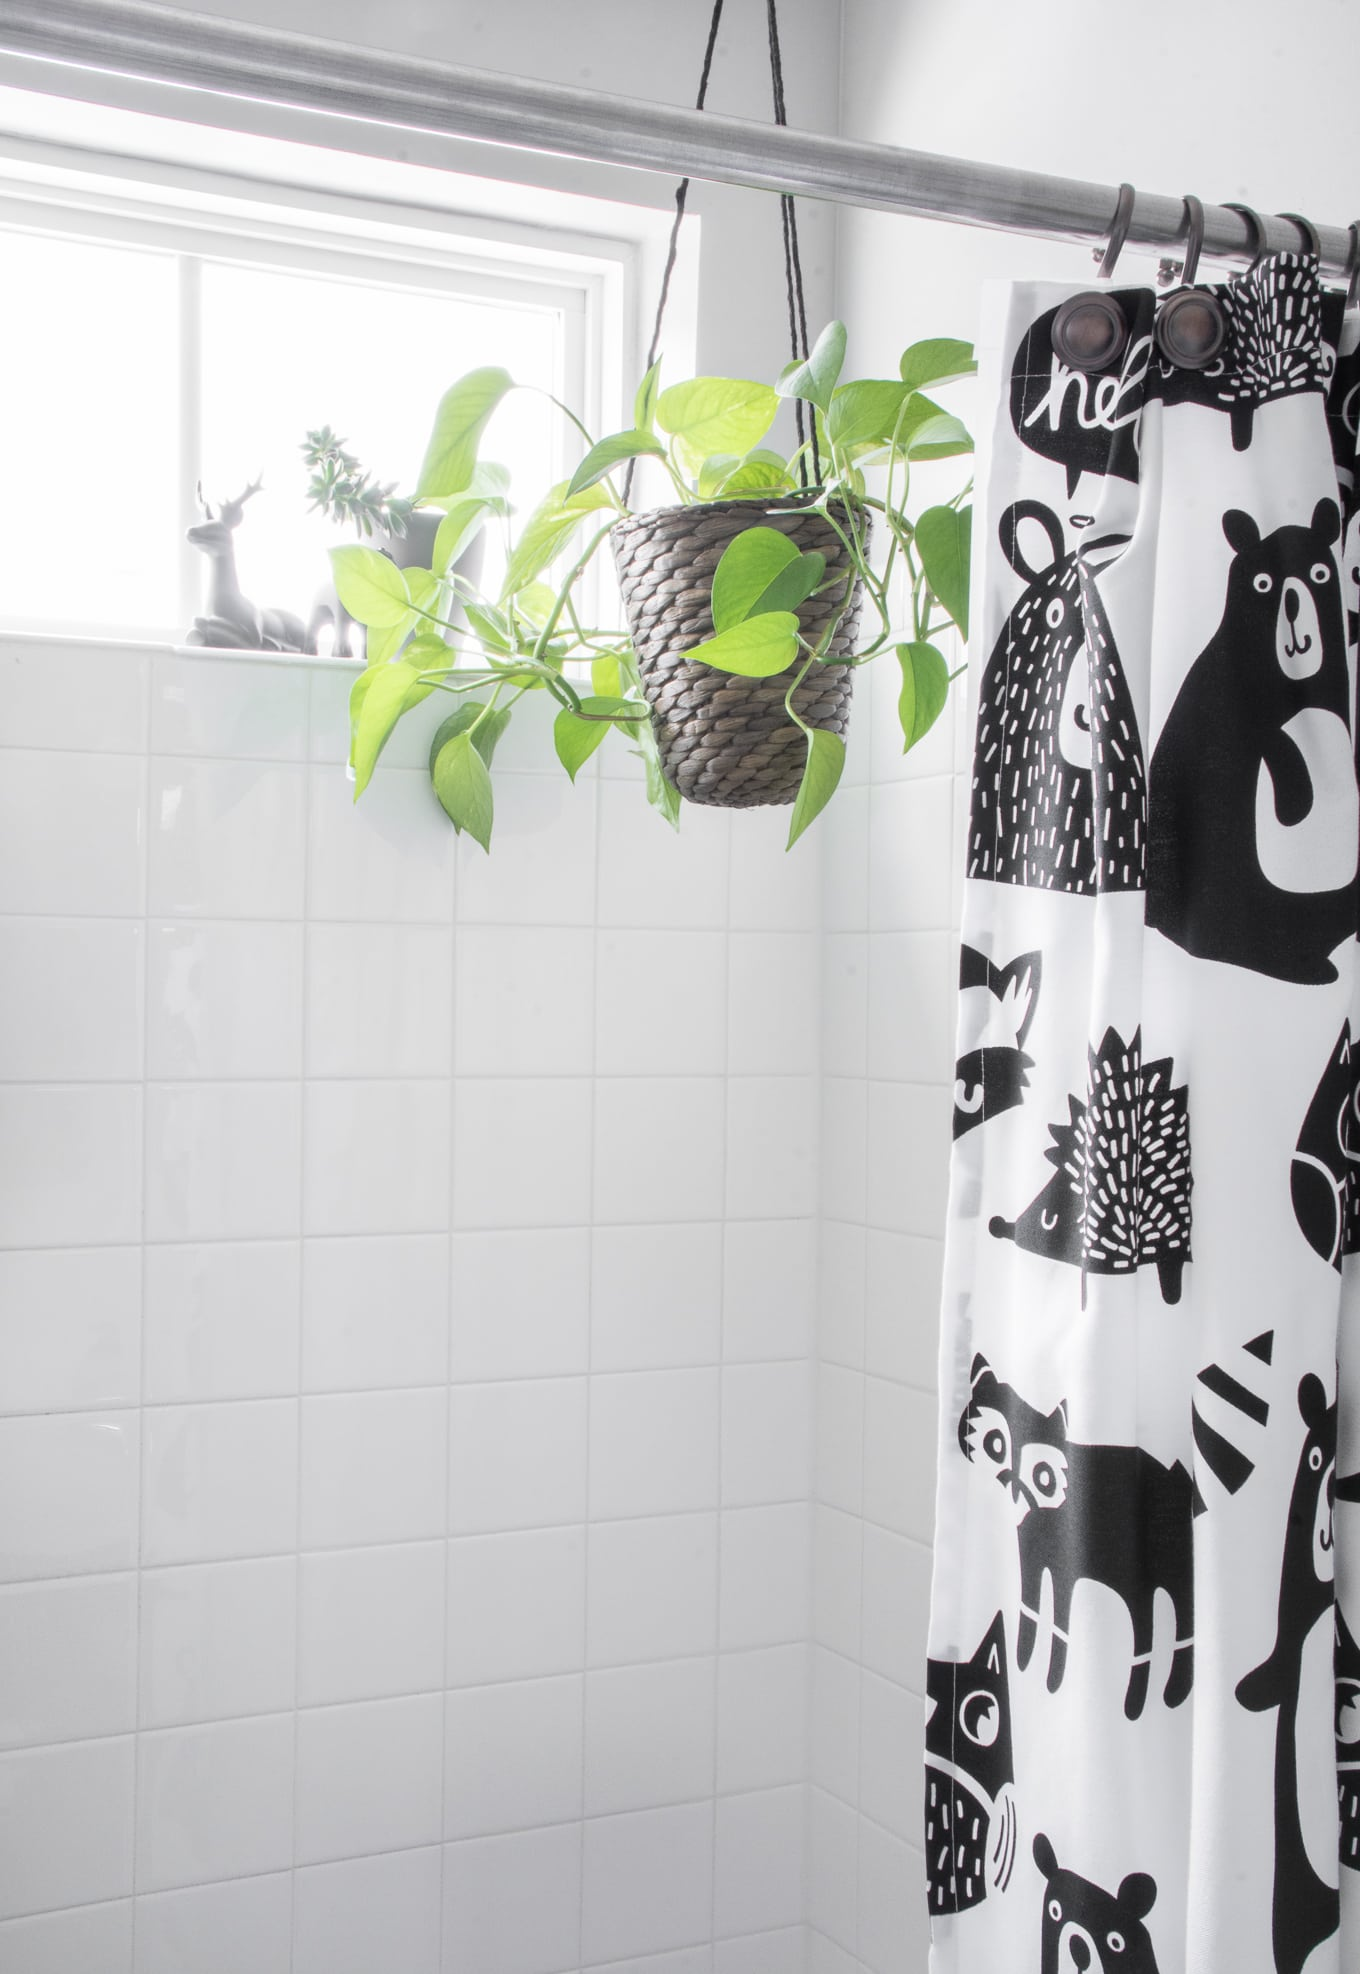 Kid-friendly bathroom decor